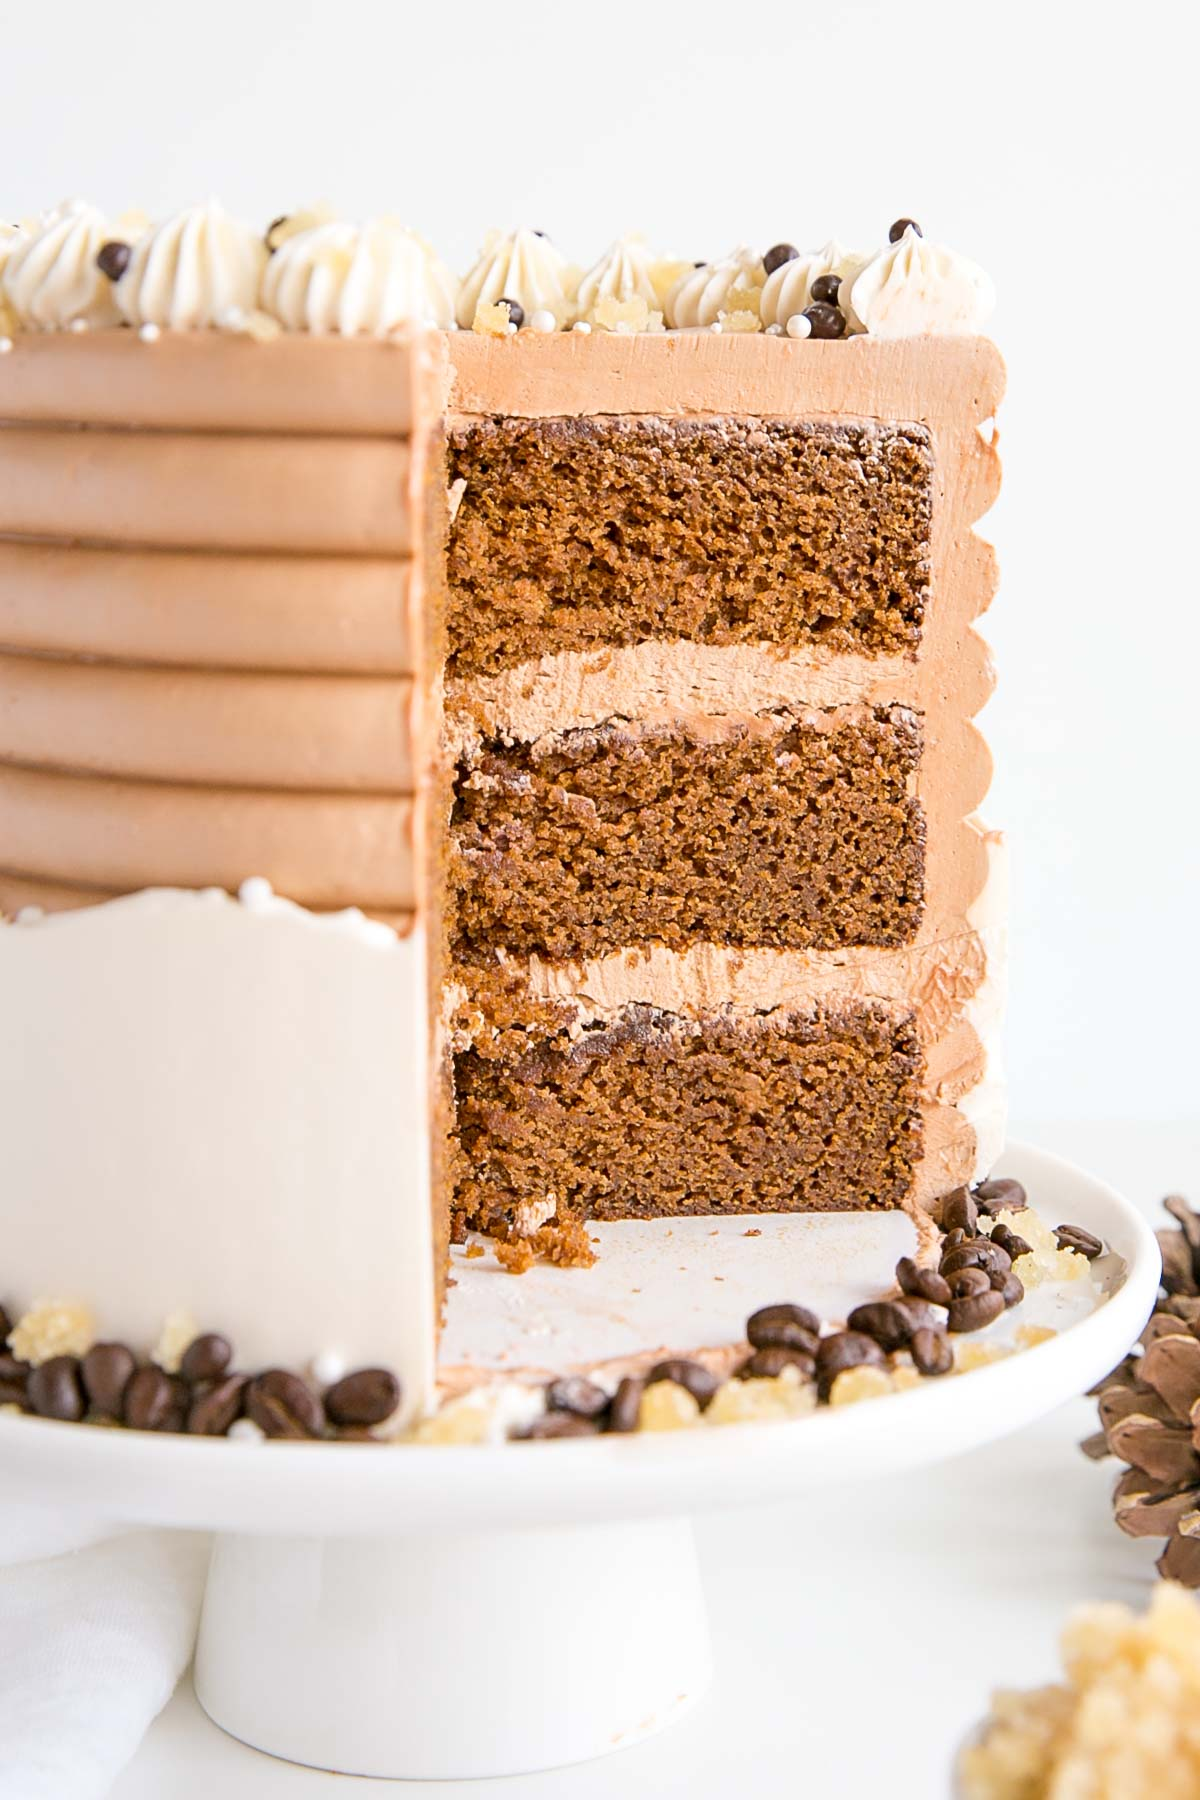 Cross section of the cake showing the gingerbread cake layers.